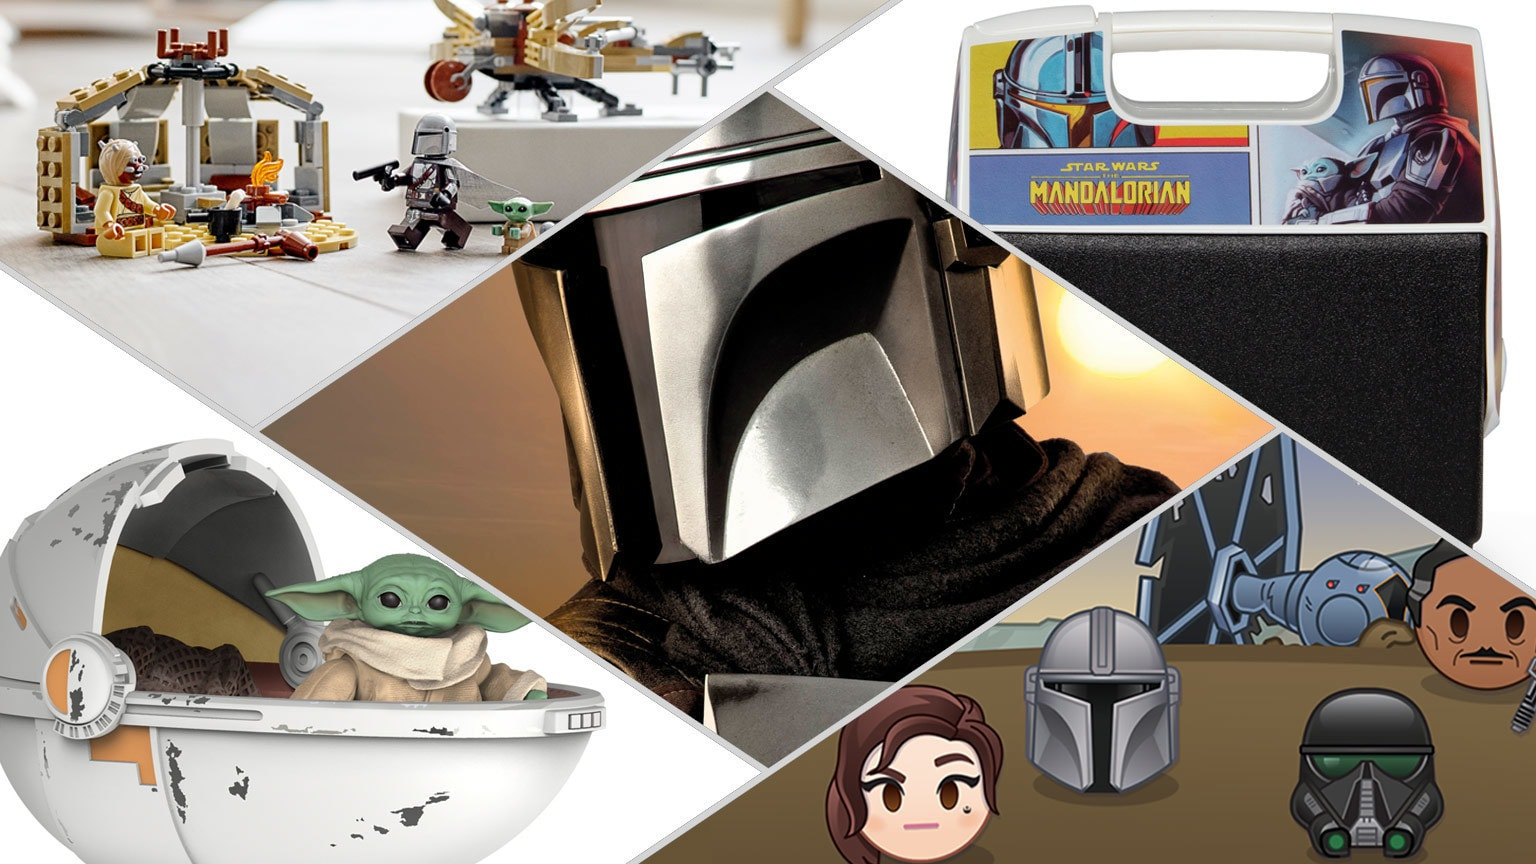 Mando Mondays: Explore The Mandalorian: The Ultimate Visual Guide and More!